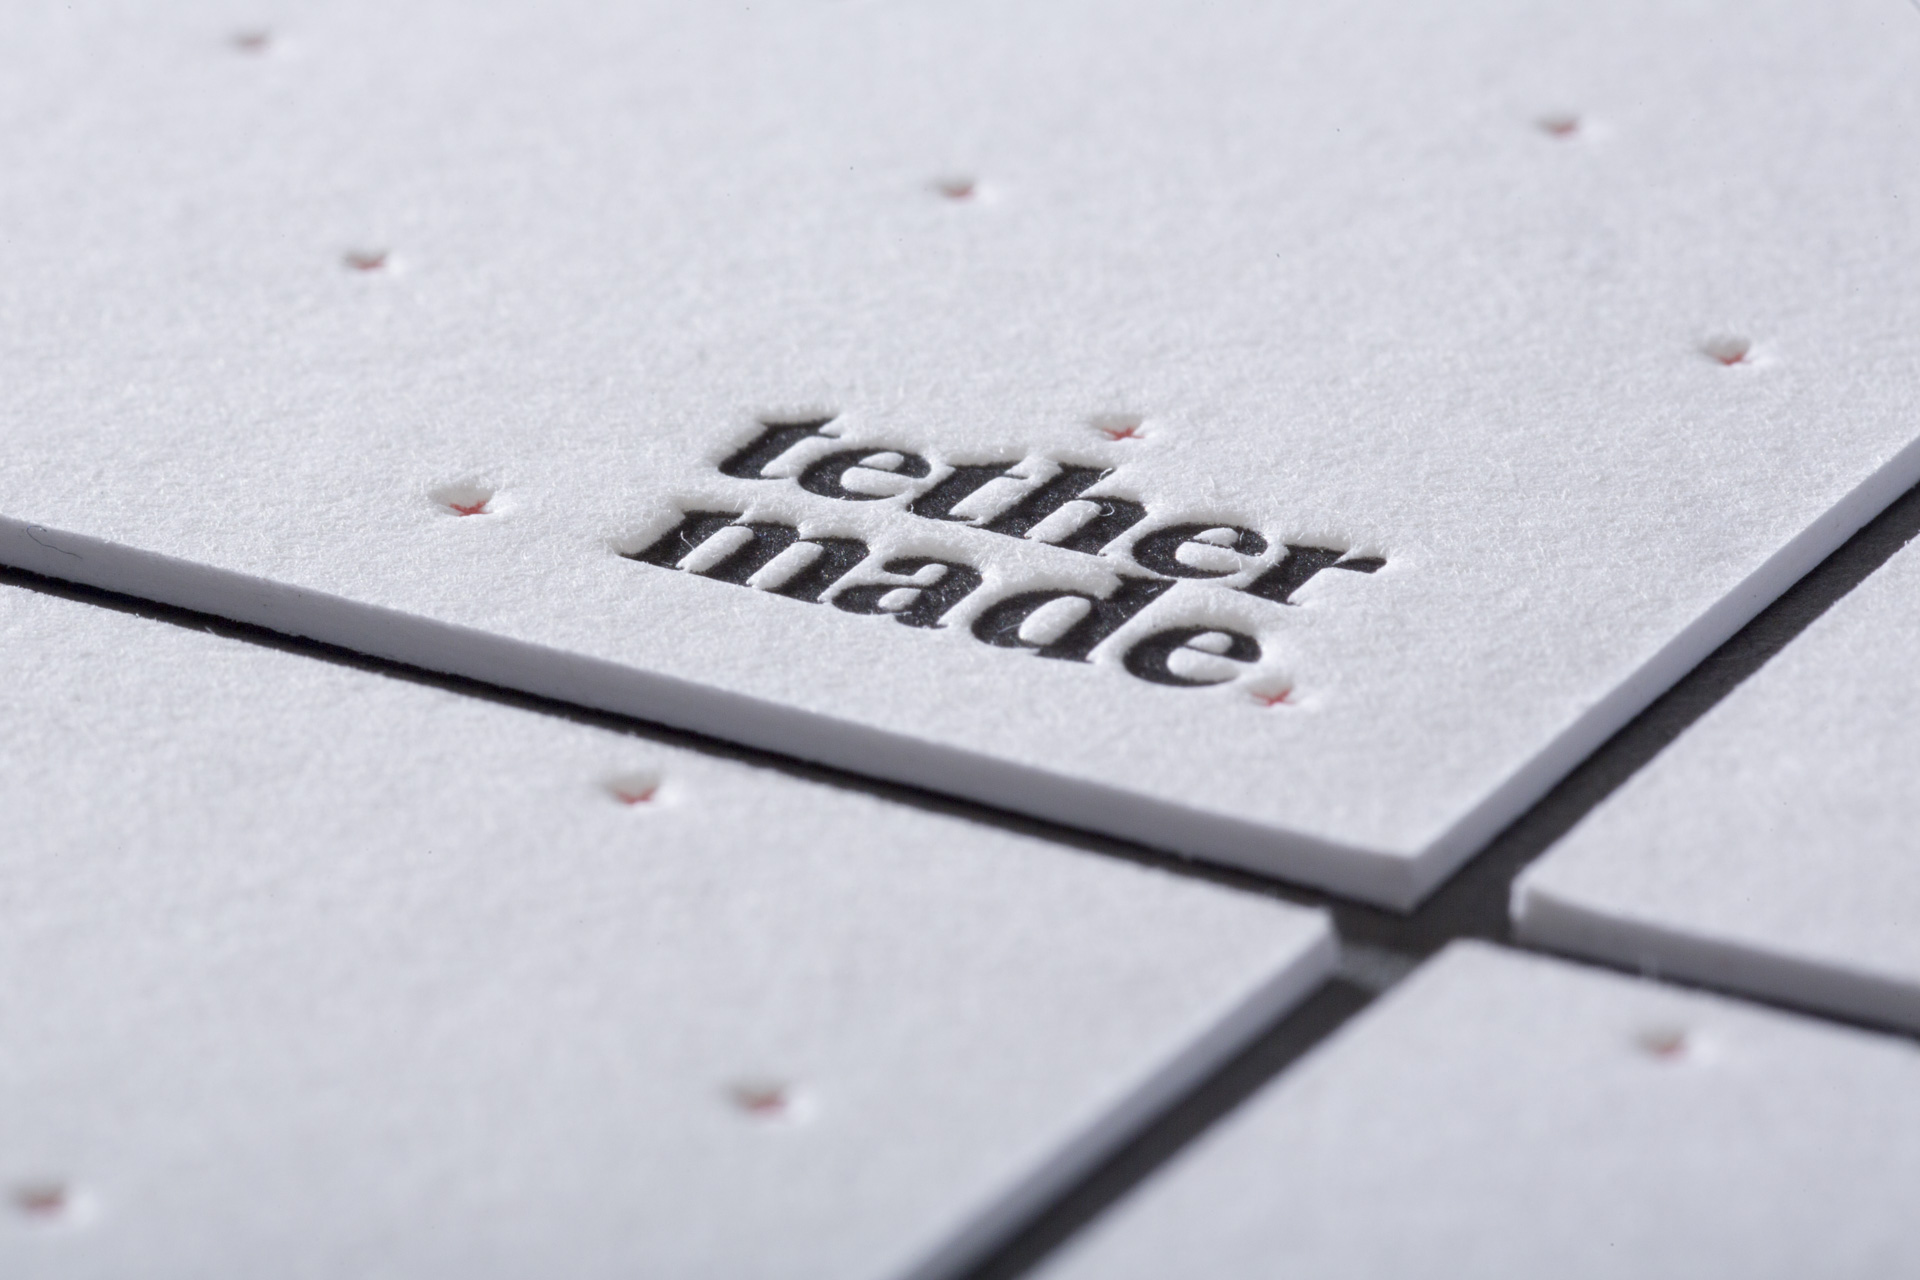 Clove St Press › Tether Made